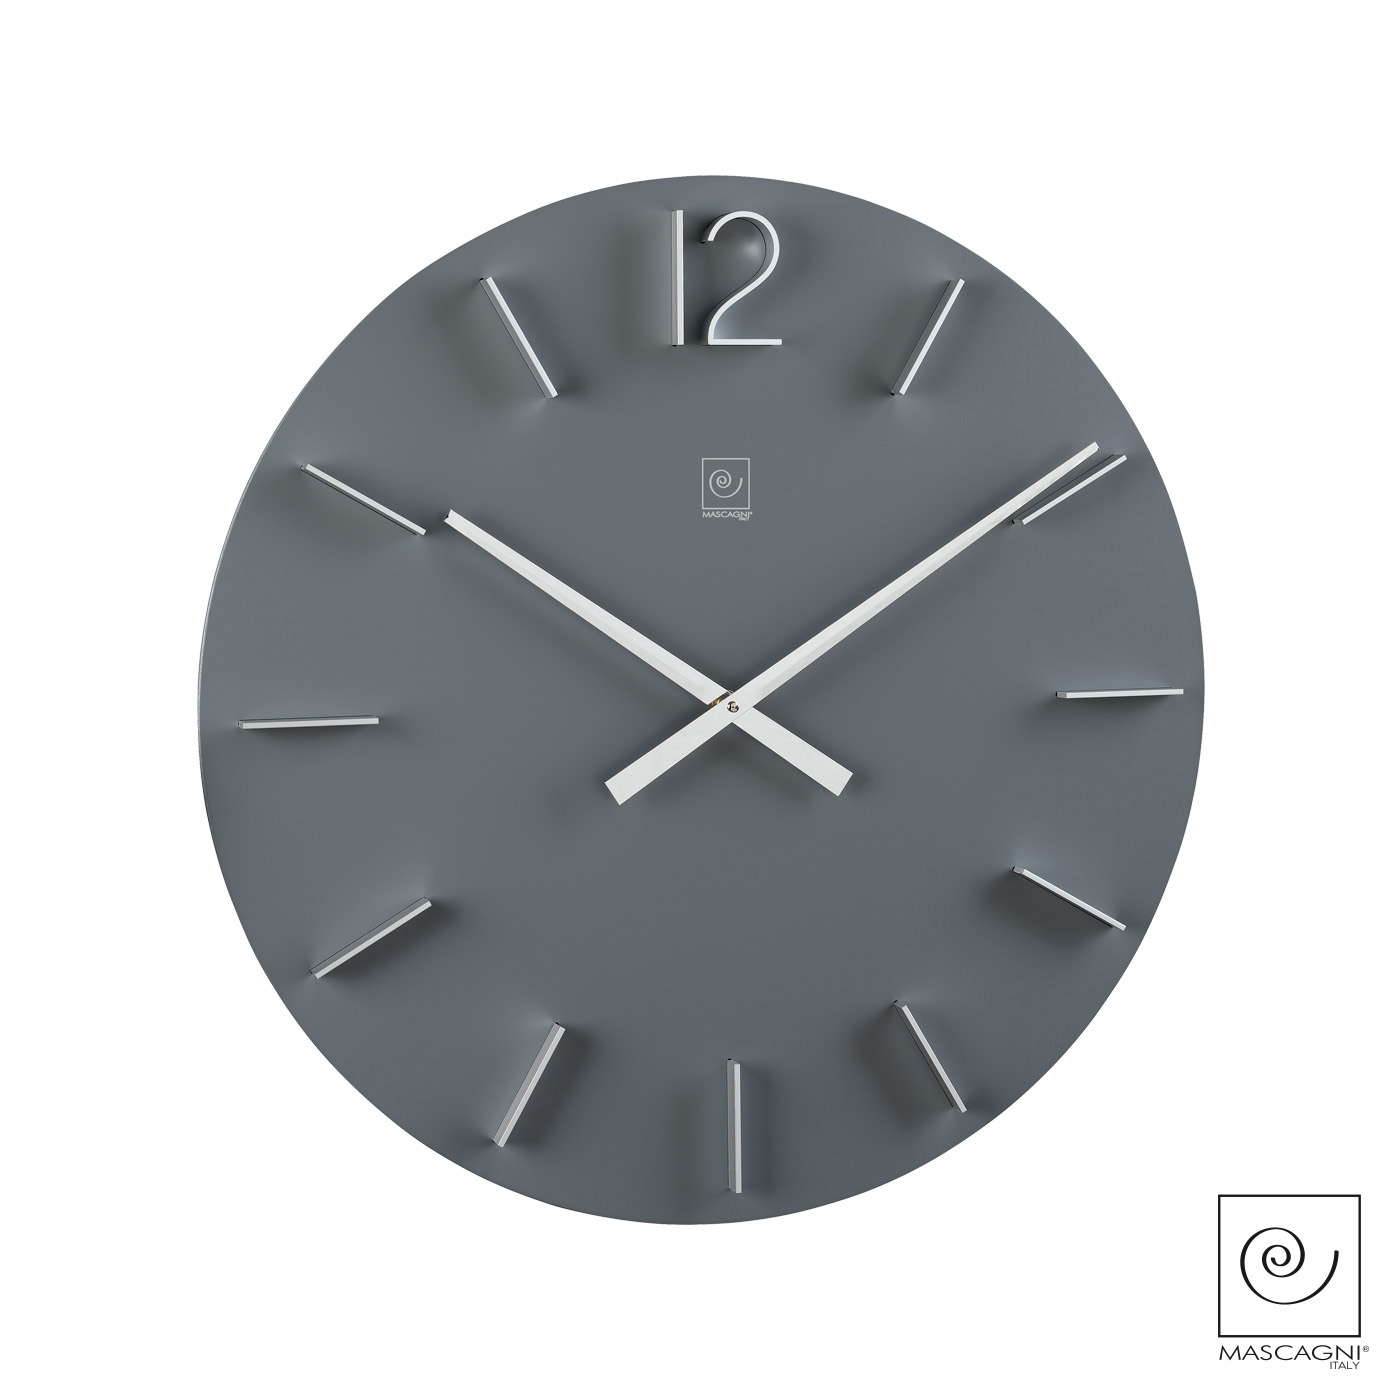 Art Mascagni M578 CLOCK DIAM.50 - COL.GREY